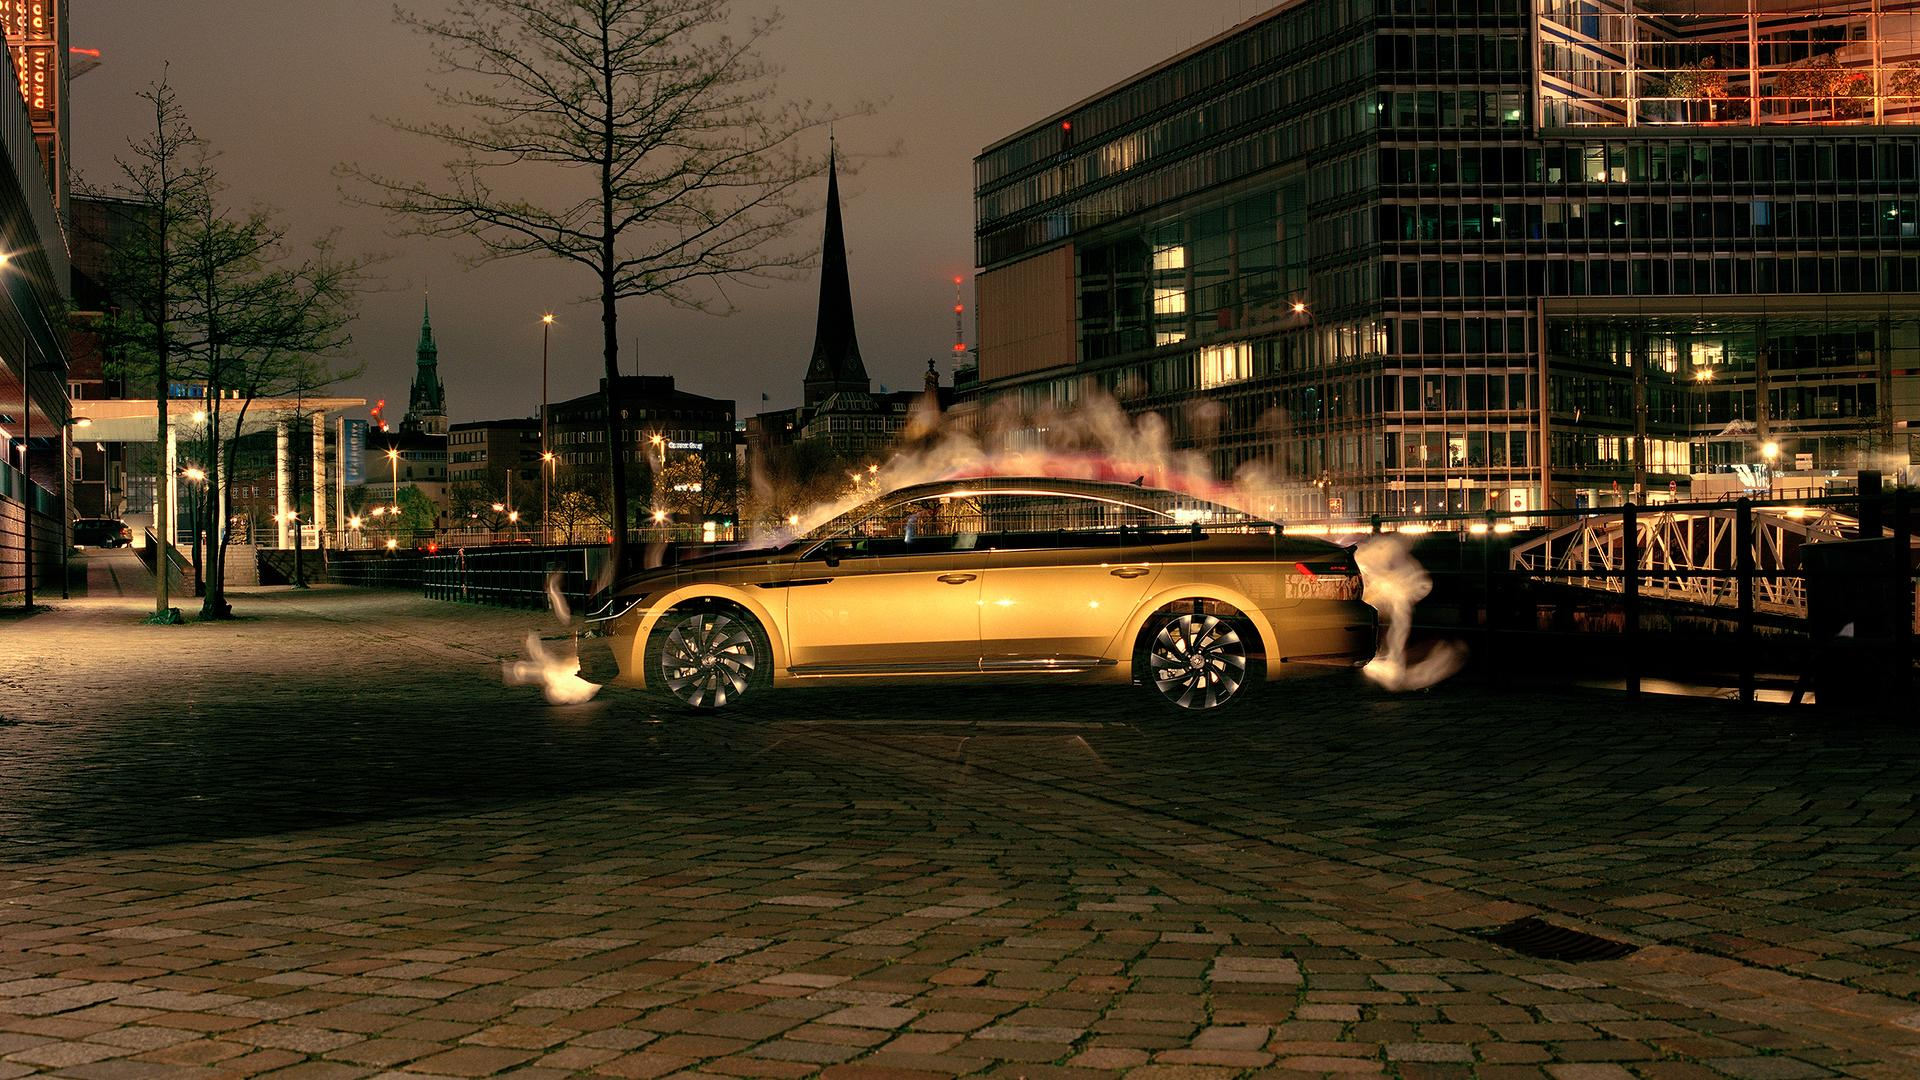 volkswagen-arteon-photo-shoot-by-pete-eckert_3